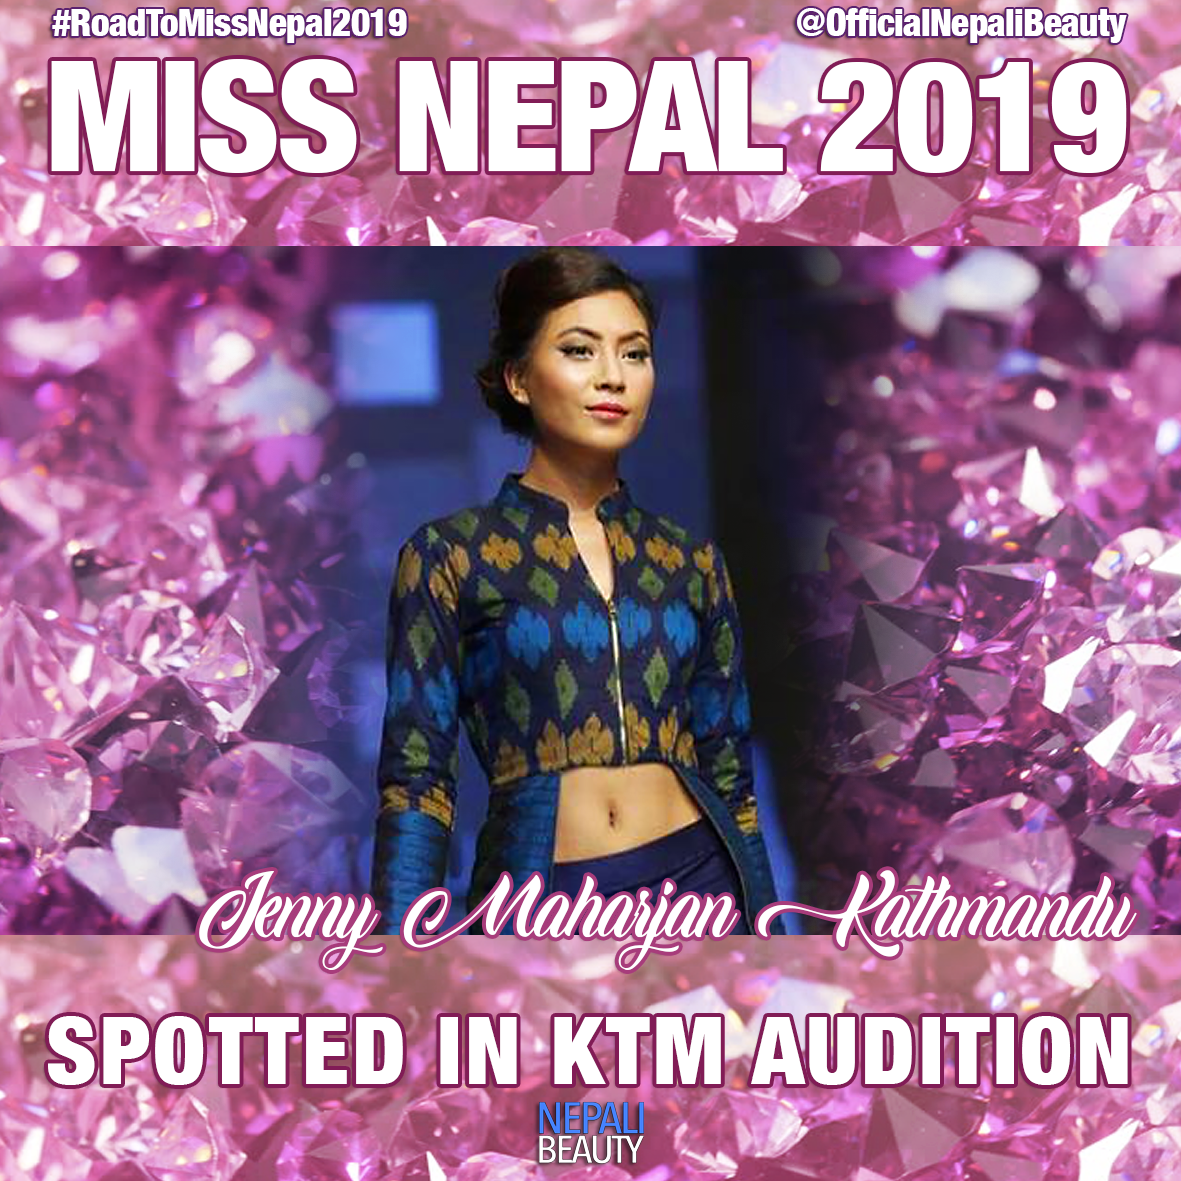 Miss Nepal 2019 Kathmandu Audition - Check out the Applicants !